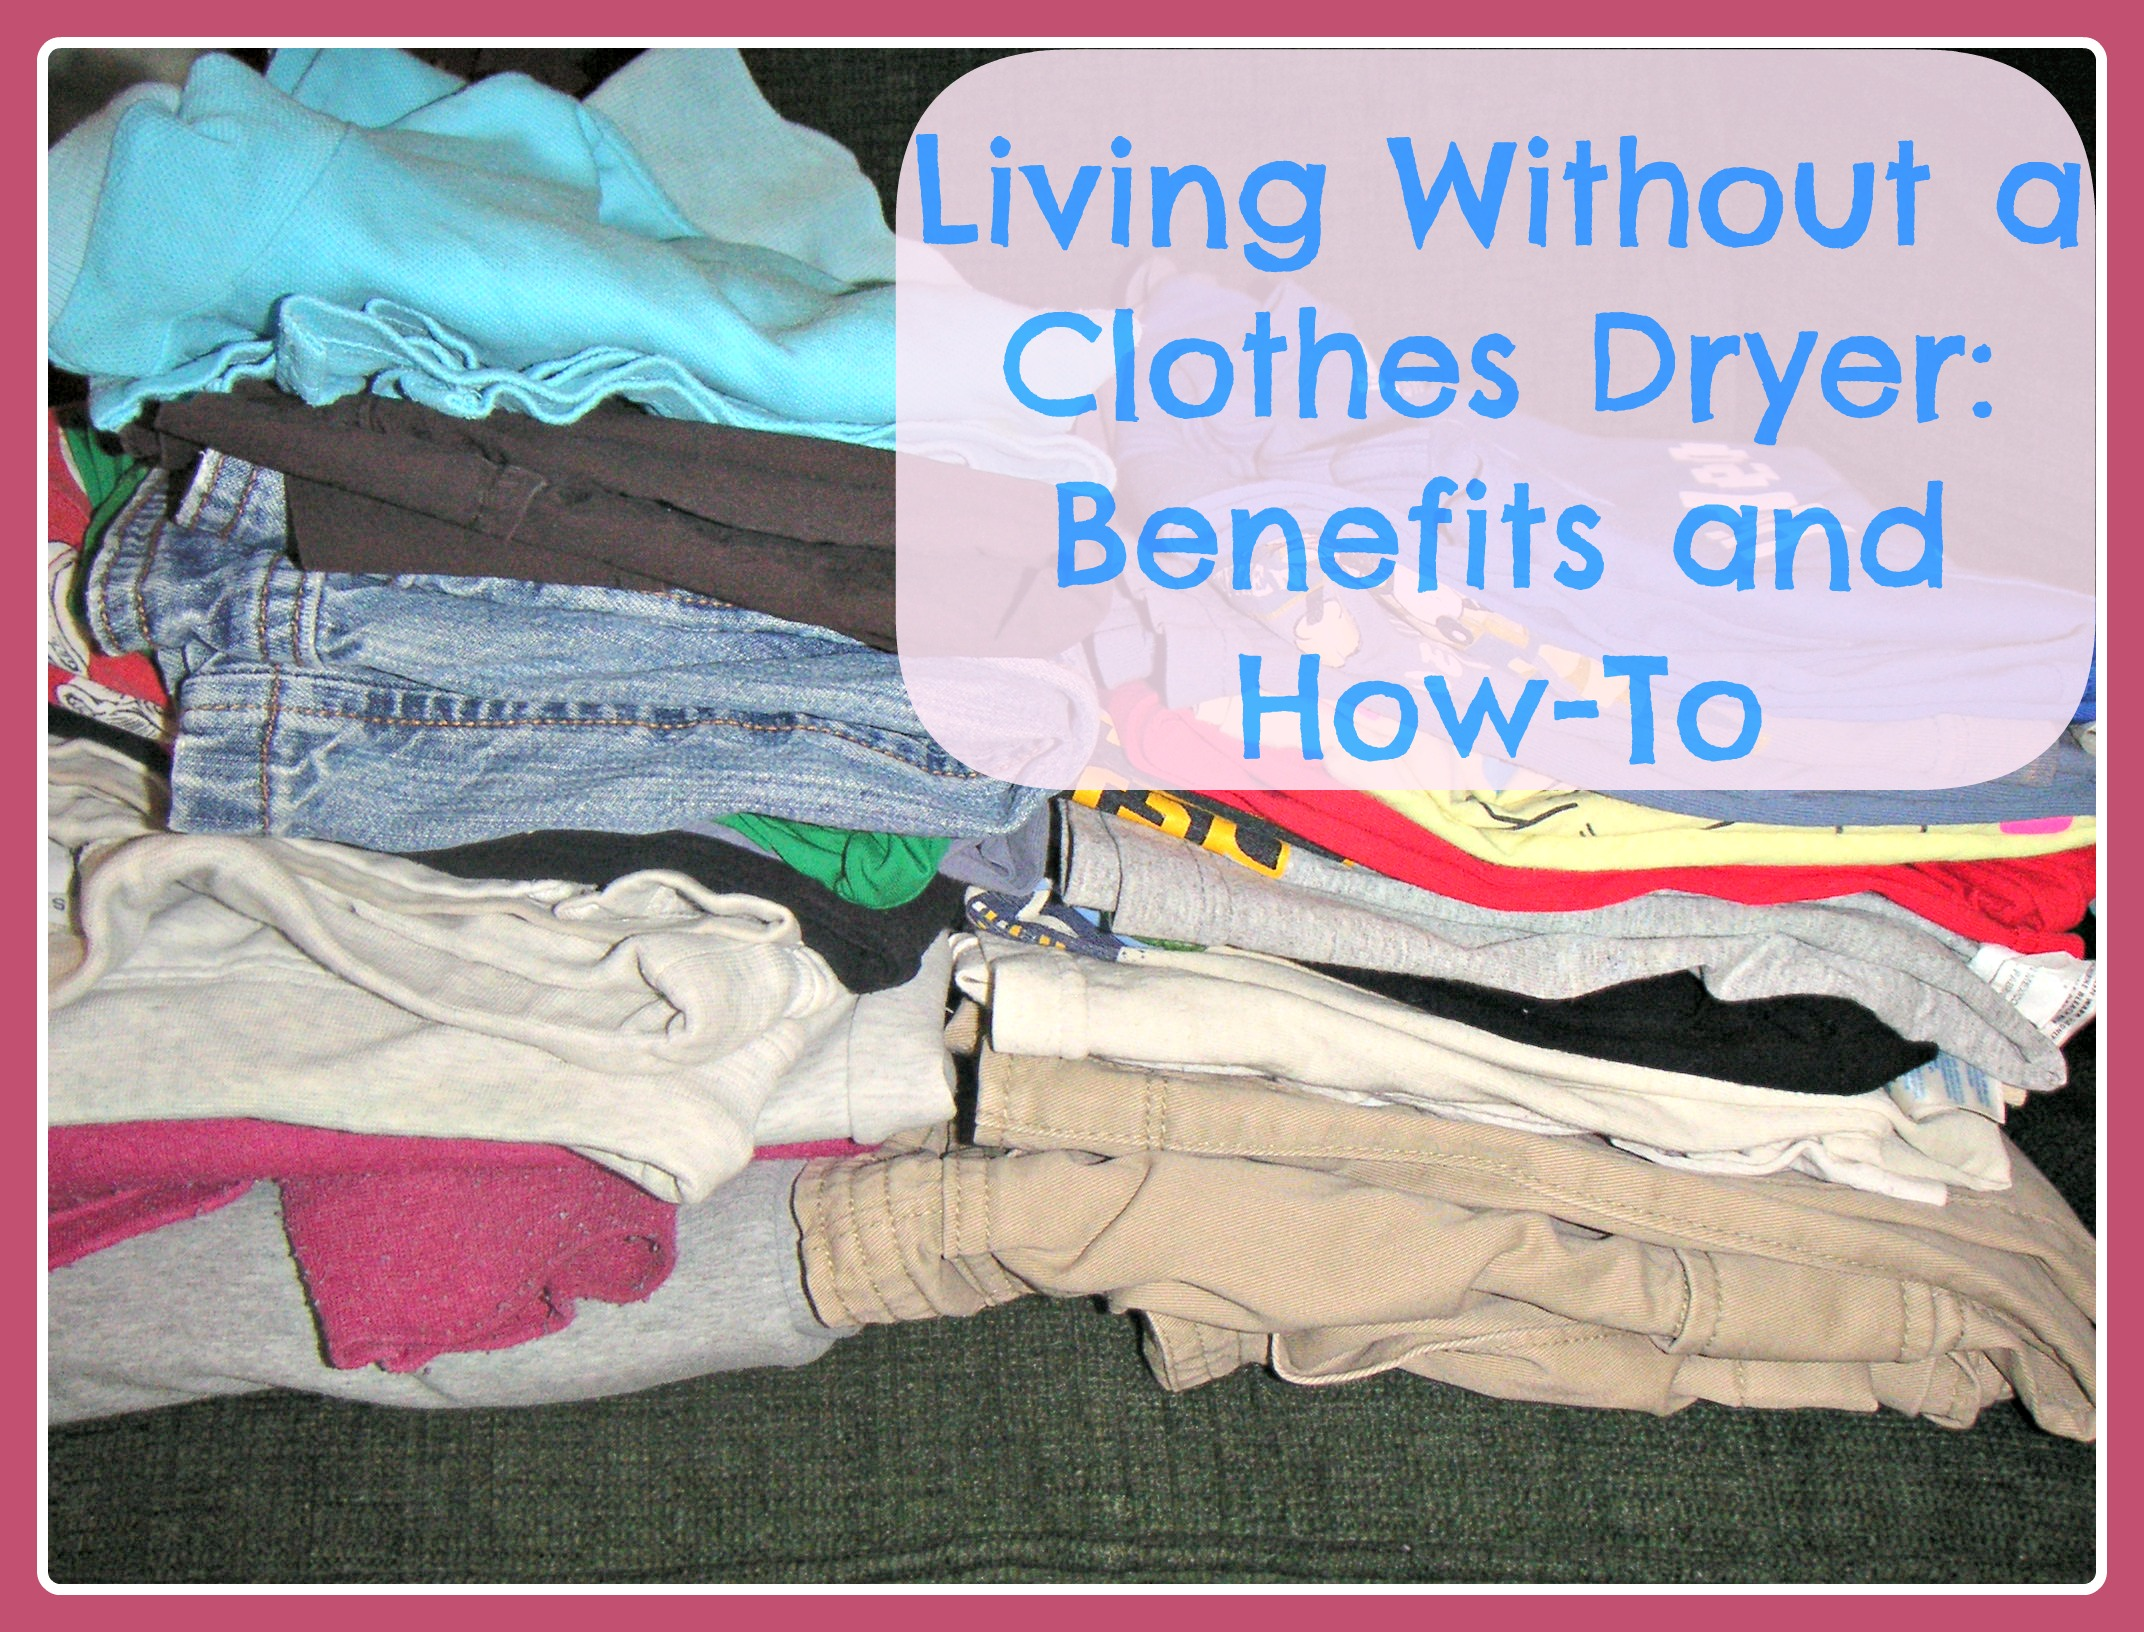 drying laundry without a dryer my drying racks and indoor clothesline setup whole natural life. Black Bedroom Furniture Sets. Home Design Ideas